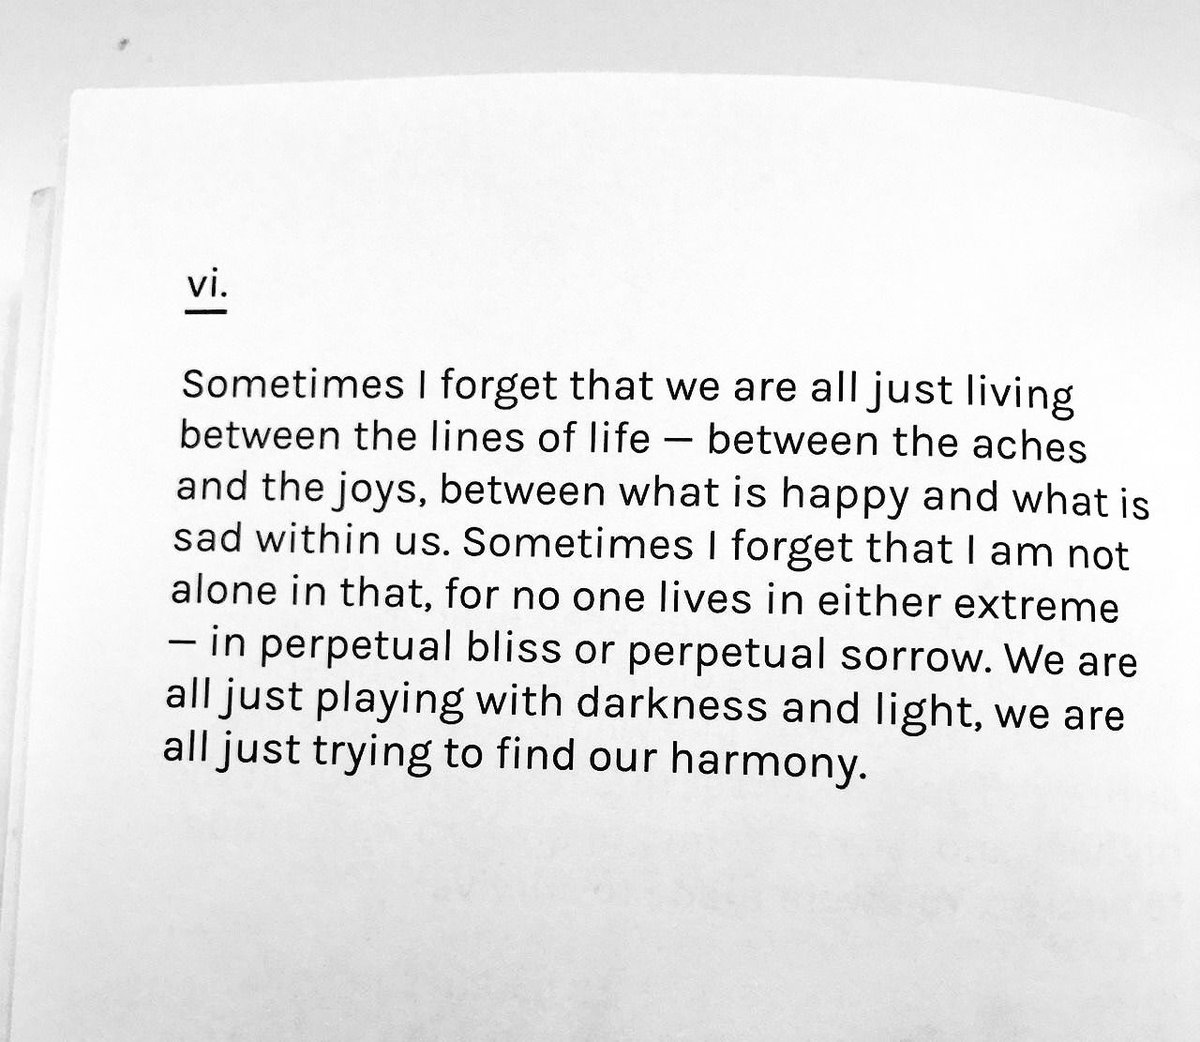 """""""We are all just trying to find our harmony..."""" https://t.co/QbFcECY56H"""